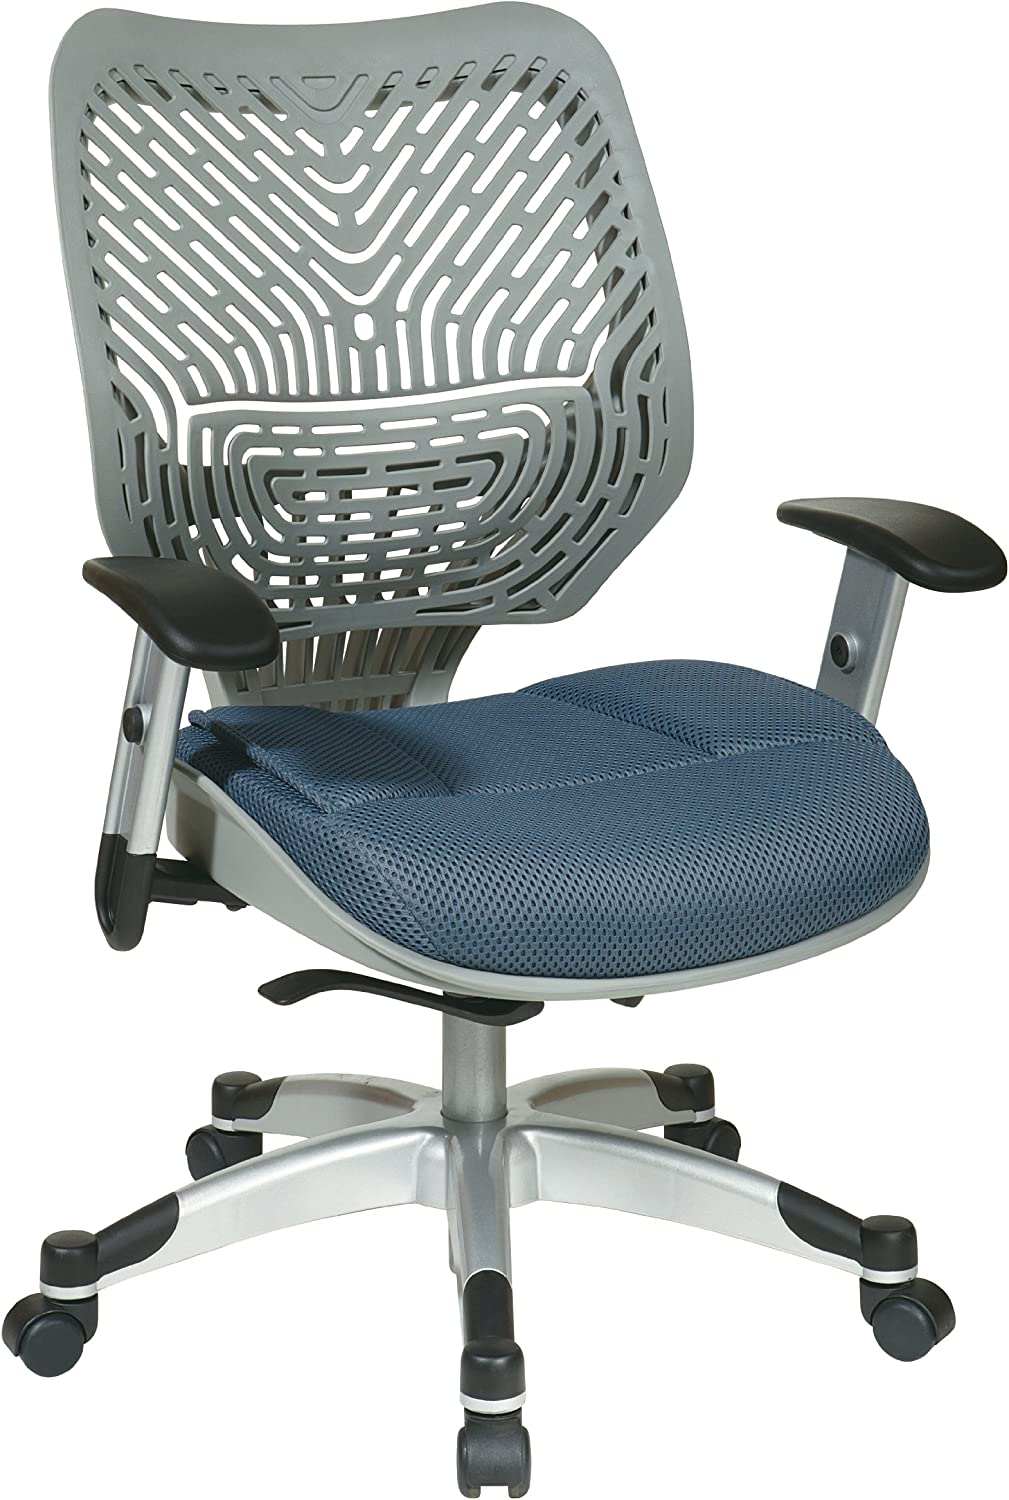 SPACE Seating REVV Self Adjusting SpaceFlex Fog Backrest Support and Padded Blue Mist Mesh Seat with Adjustable Arms and Platinum Finish Base Managers Chair